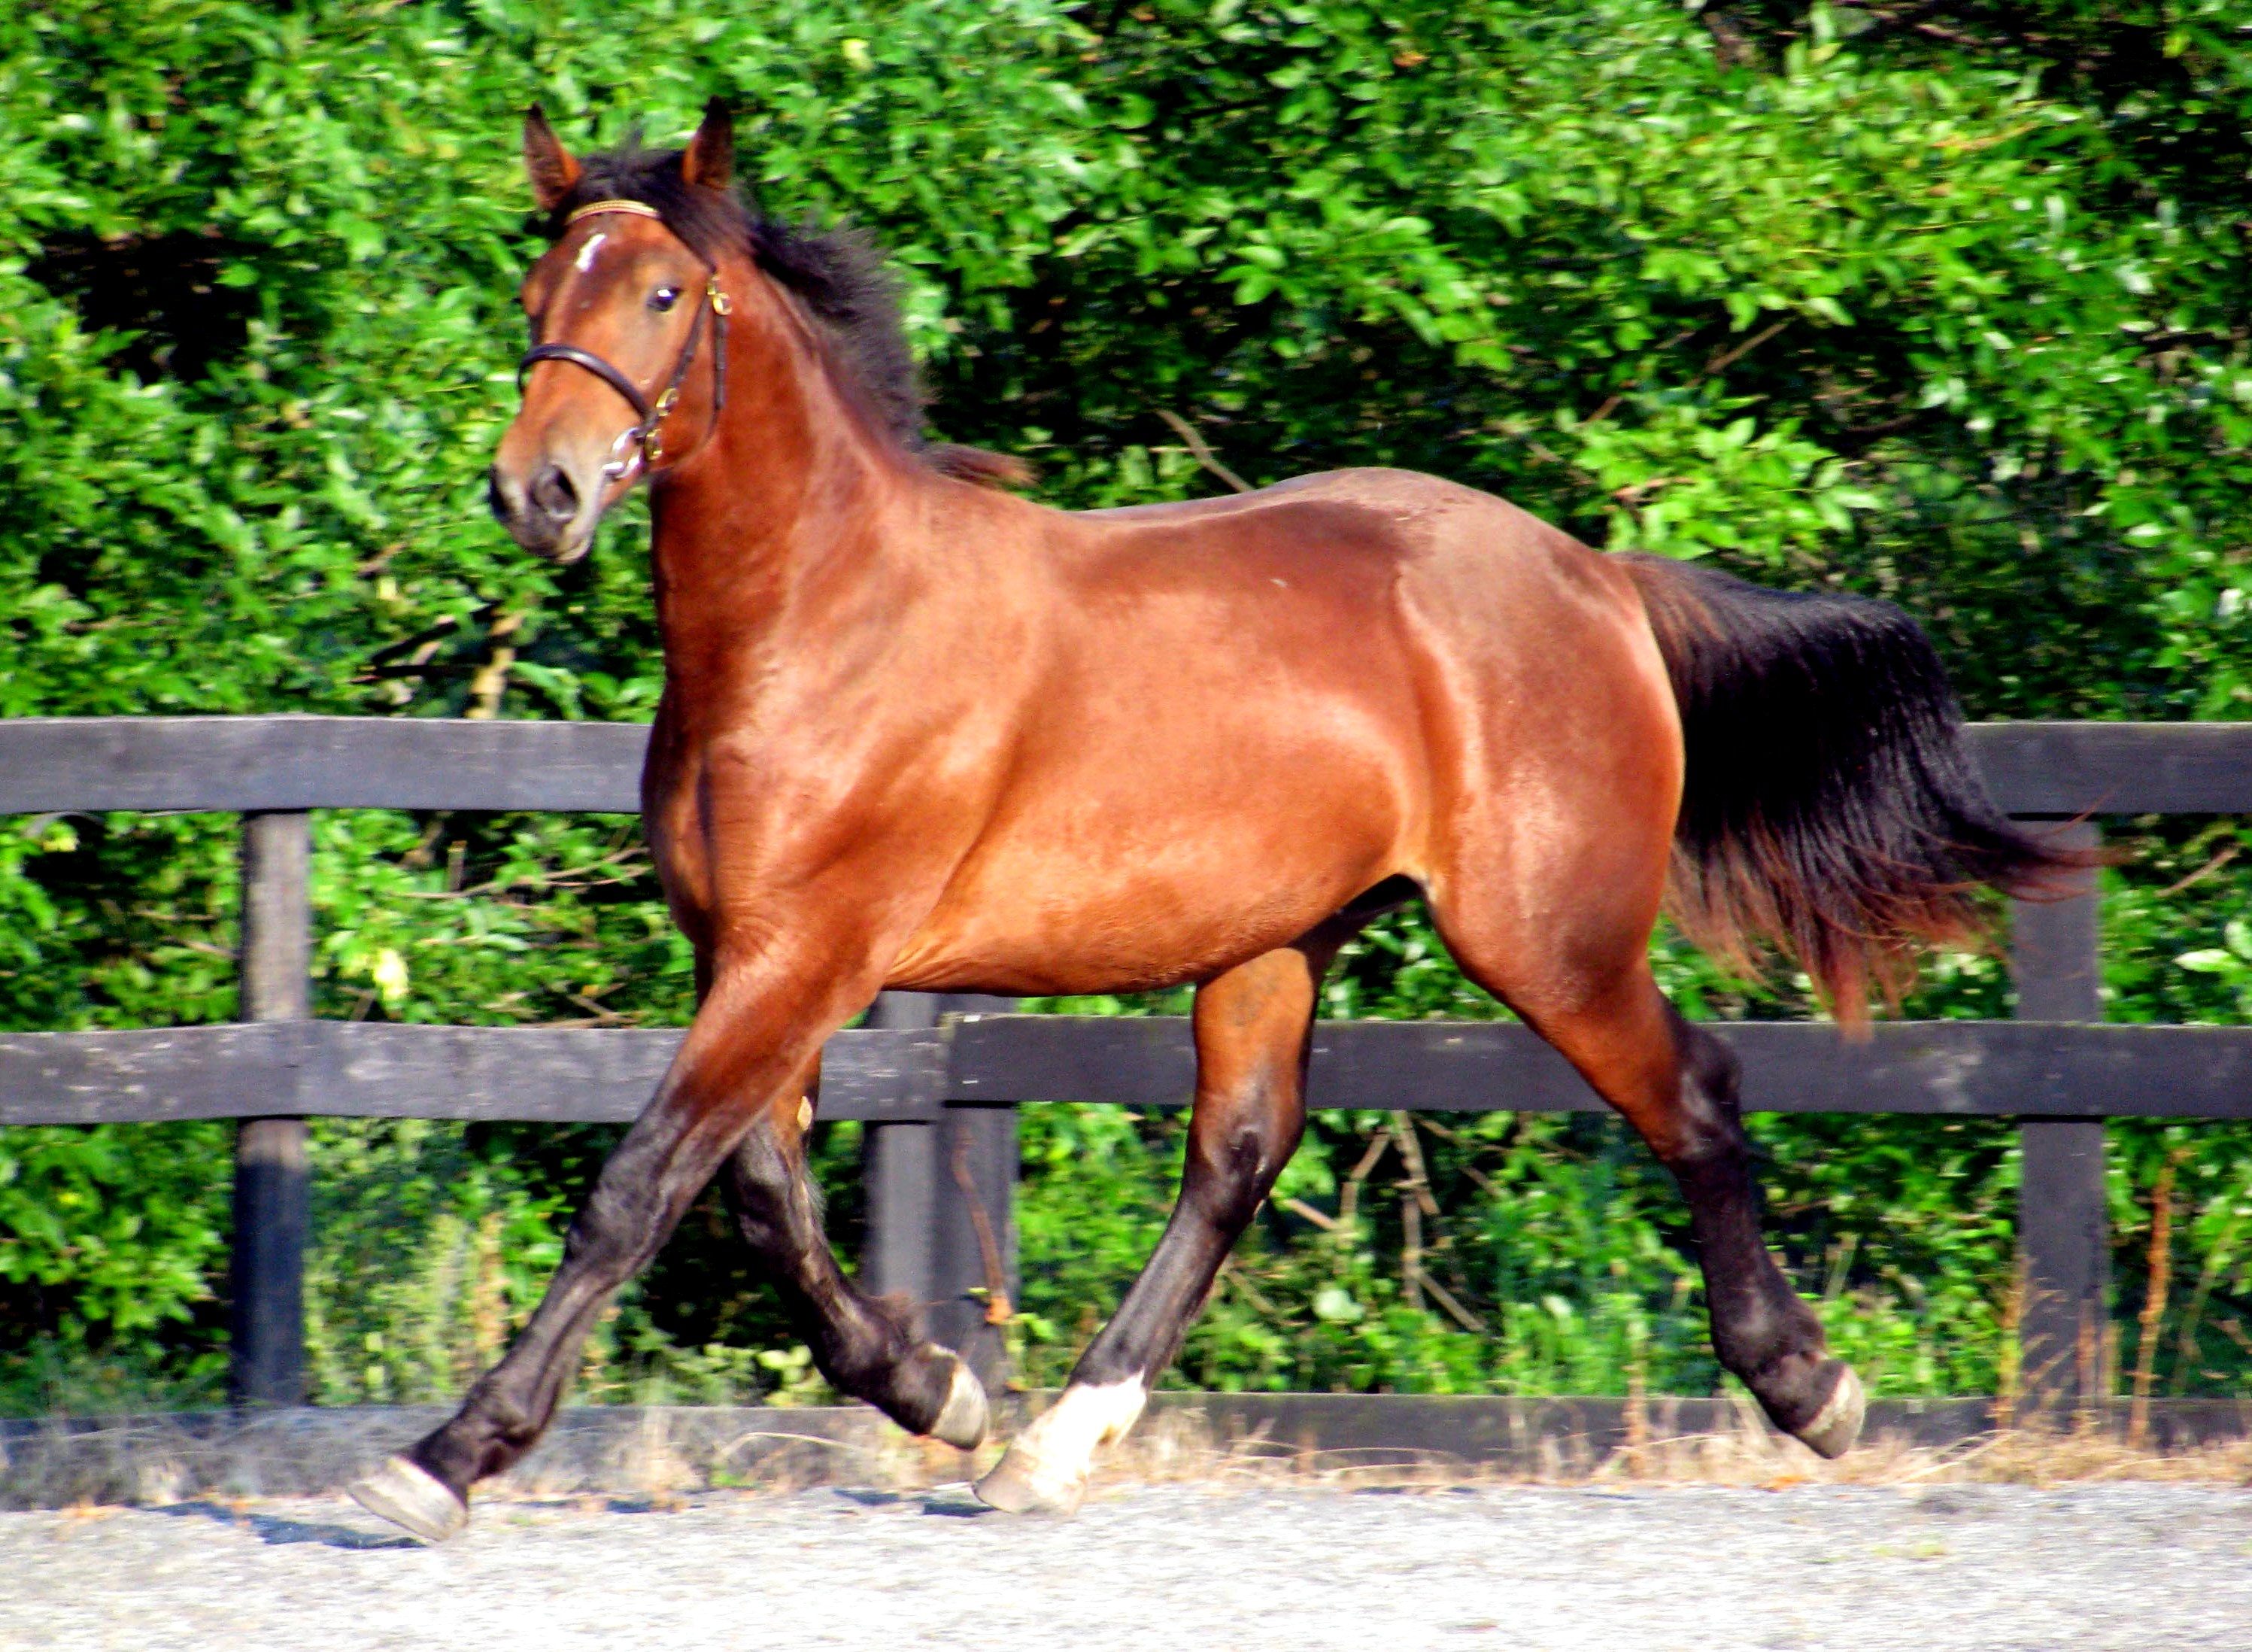 Tiger horse breed - photo#15